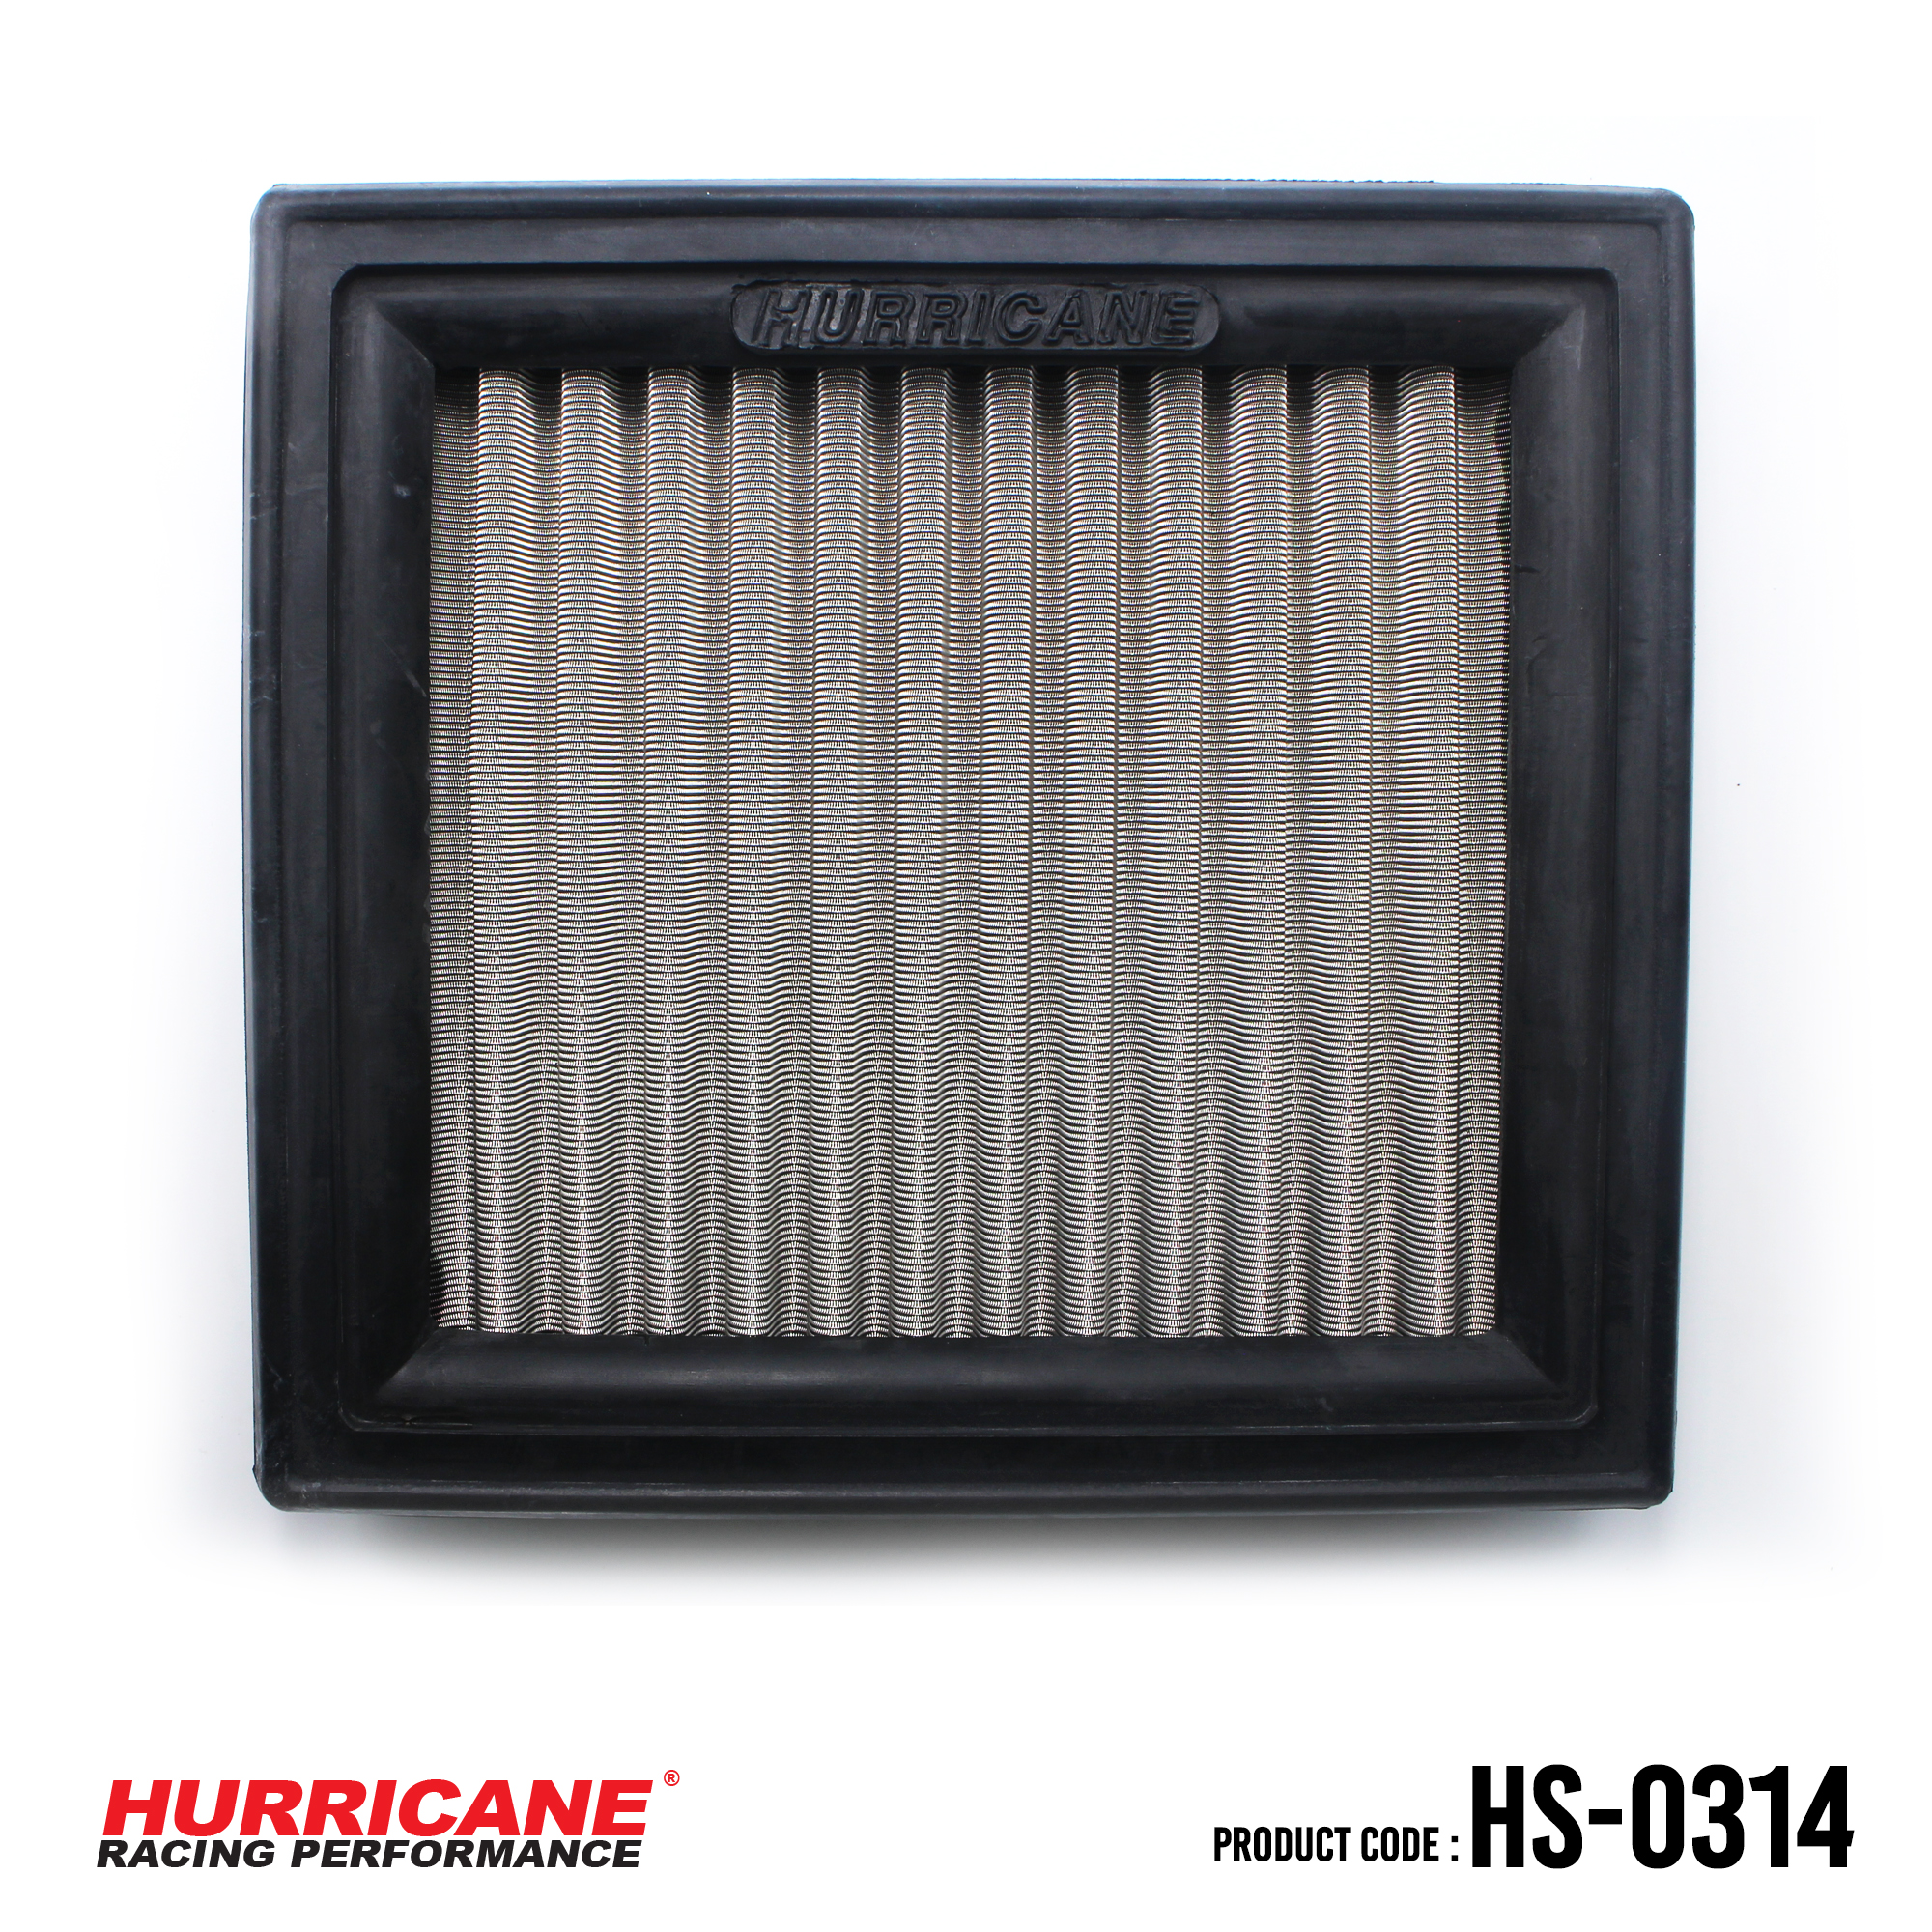 HURRICANE STAINLESS STEEL AIR FILTER FOR HS-0314 Nissan